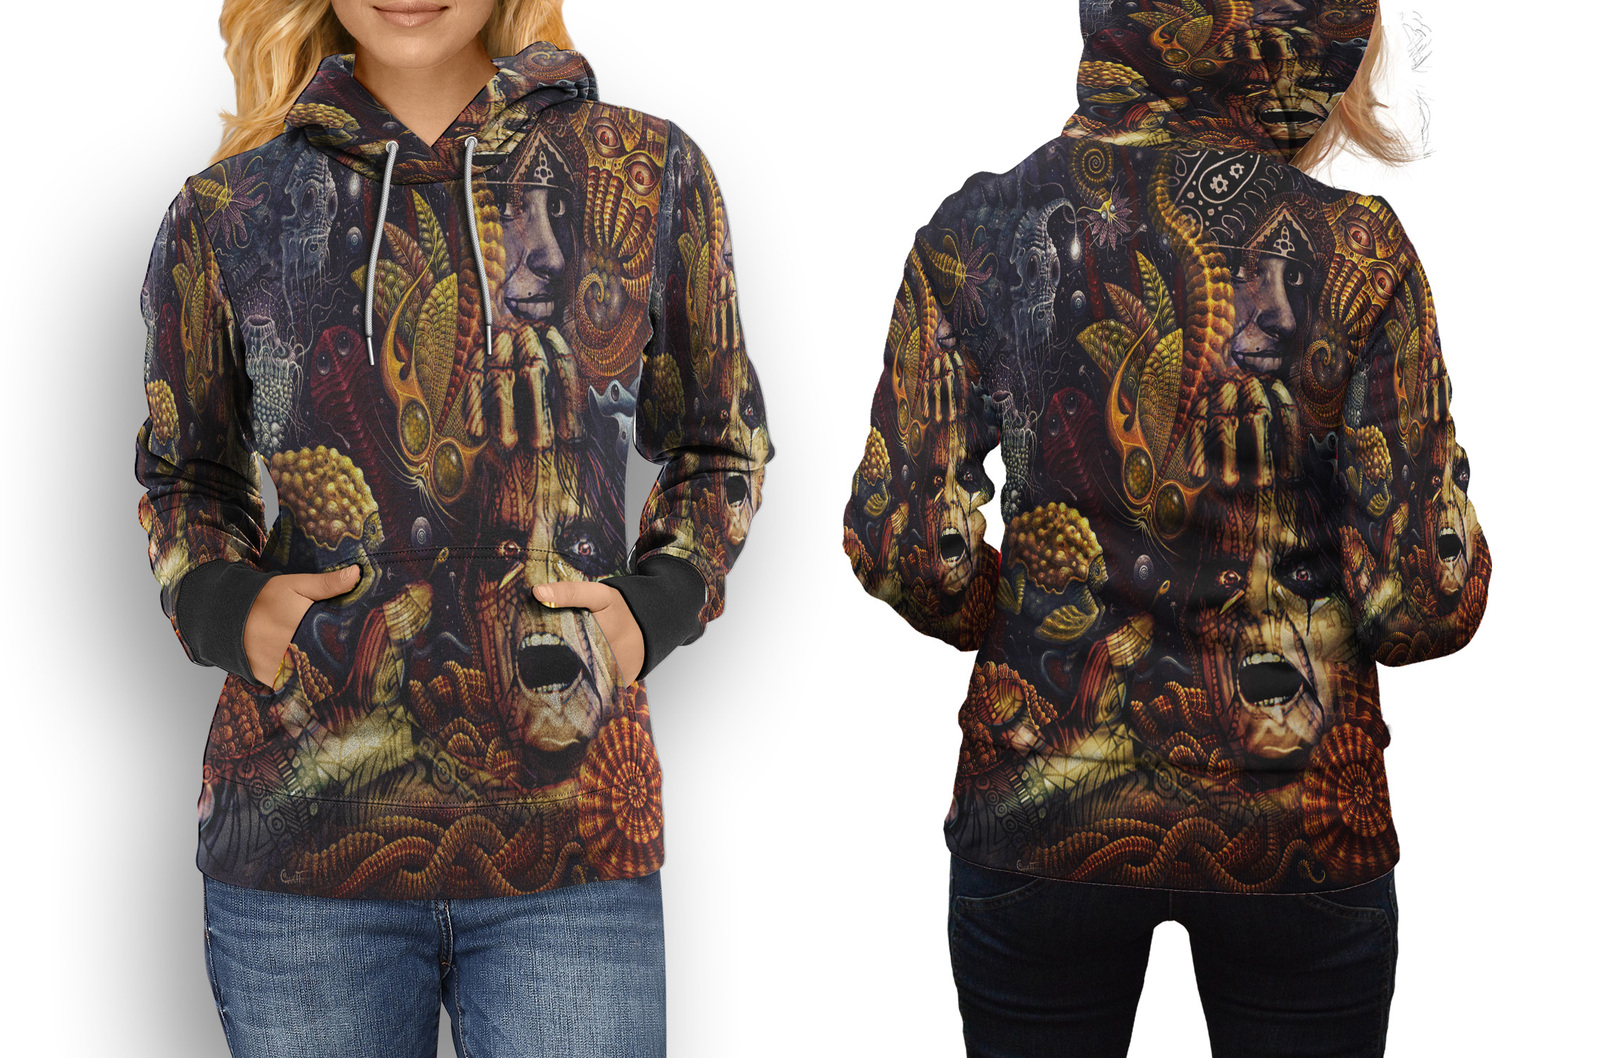 Primary image for hoodie women Alice cooper